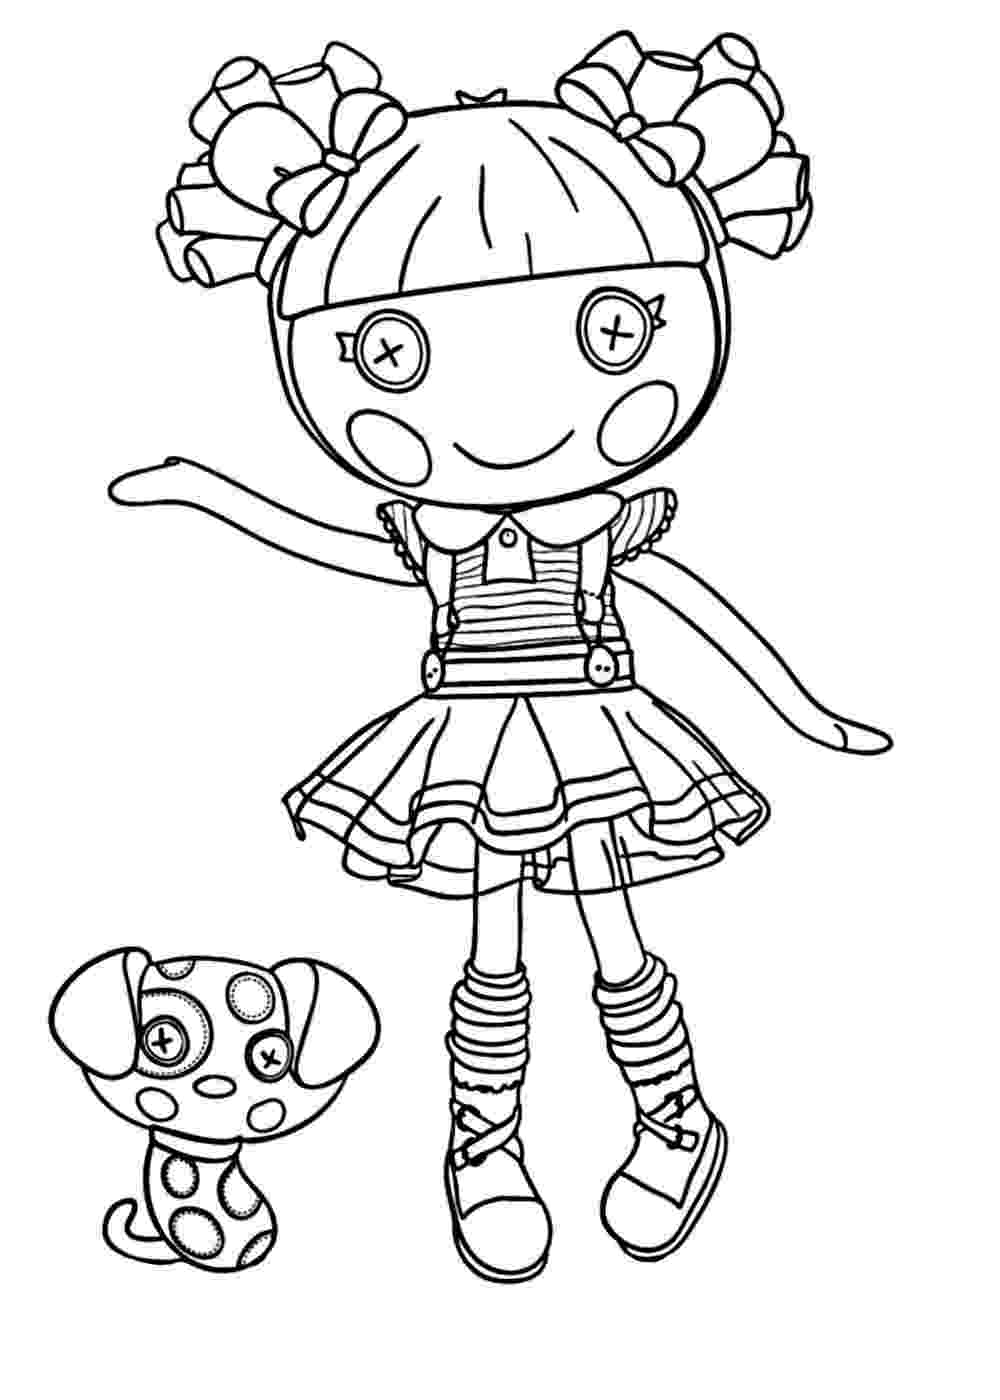 lalaloopsy littles coloring pages free printable lalaloopsy coloring pages for kids cool2bkids littles pages coloring lalaloopsy